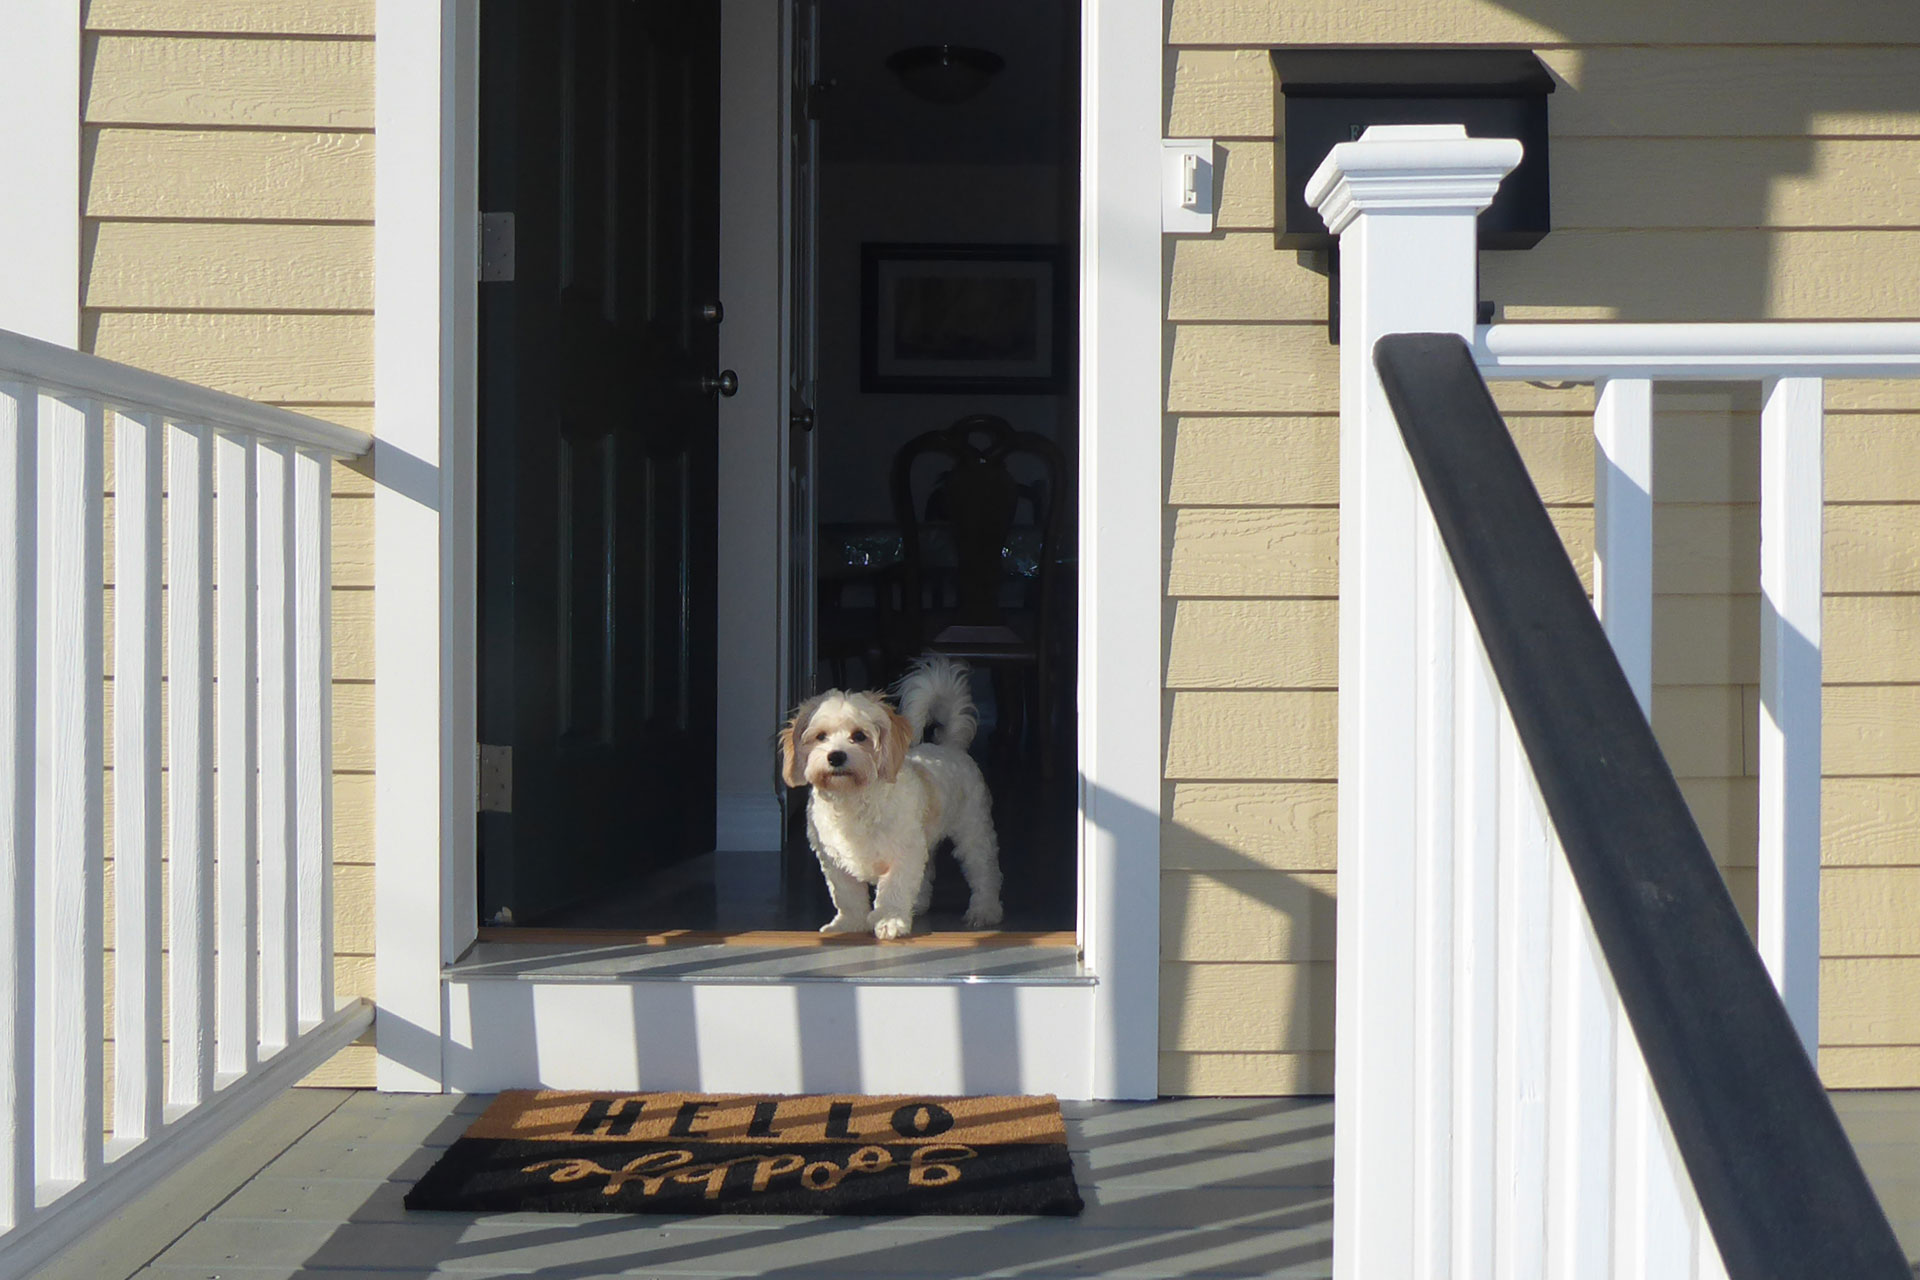 Really cute dog standing in the front door of a Pavillion development home.